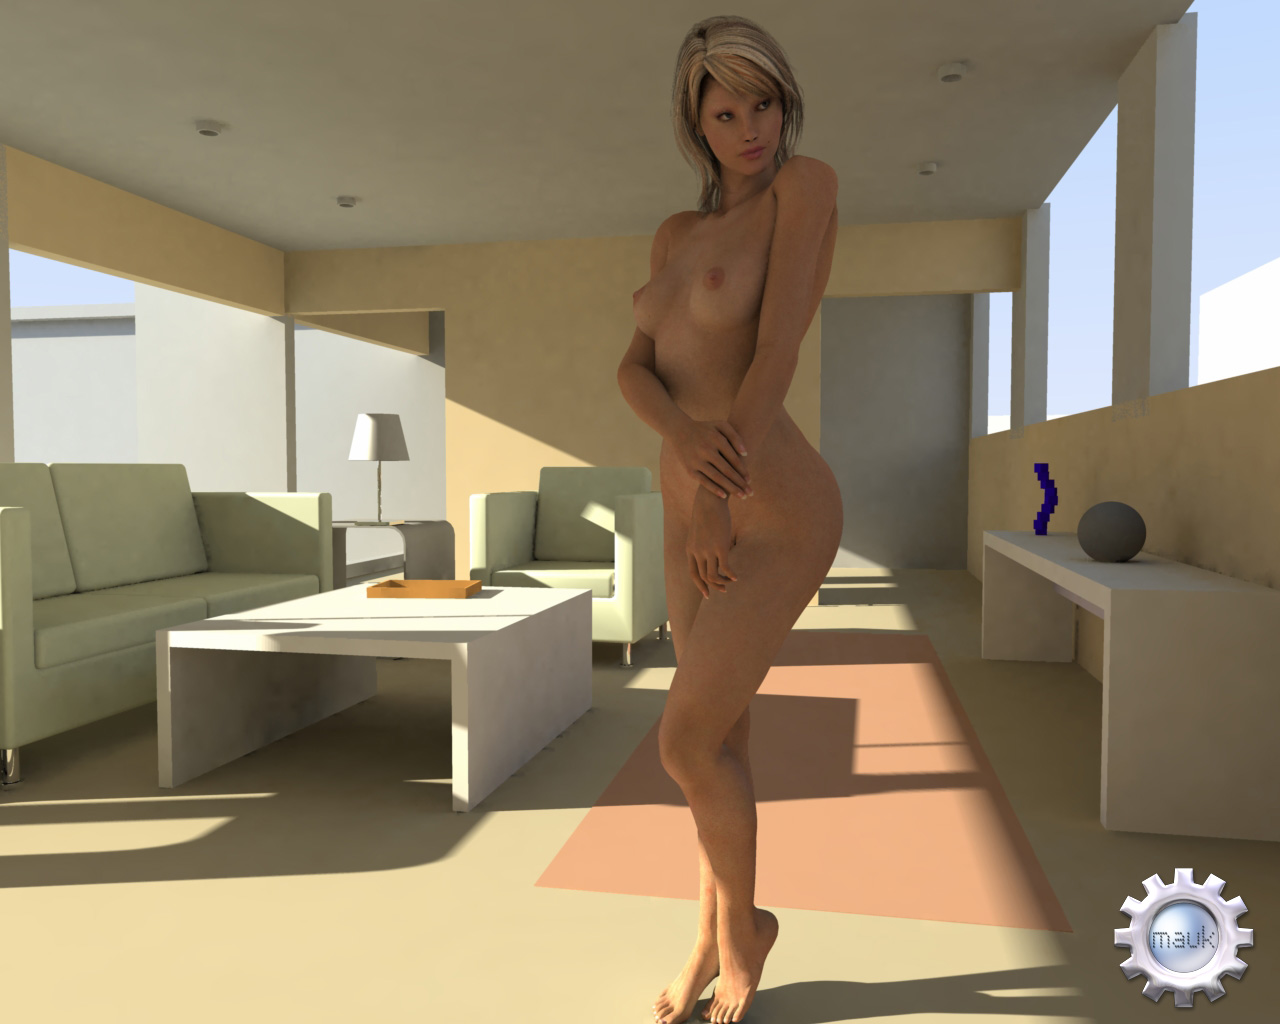 Tes 5 skyrim nude patch anime pictures